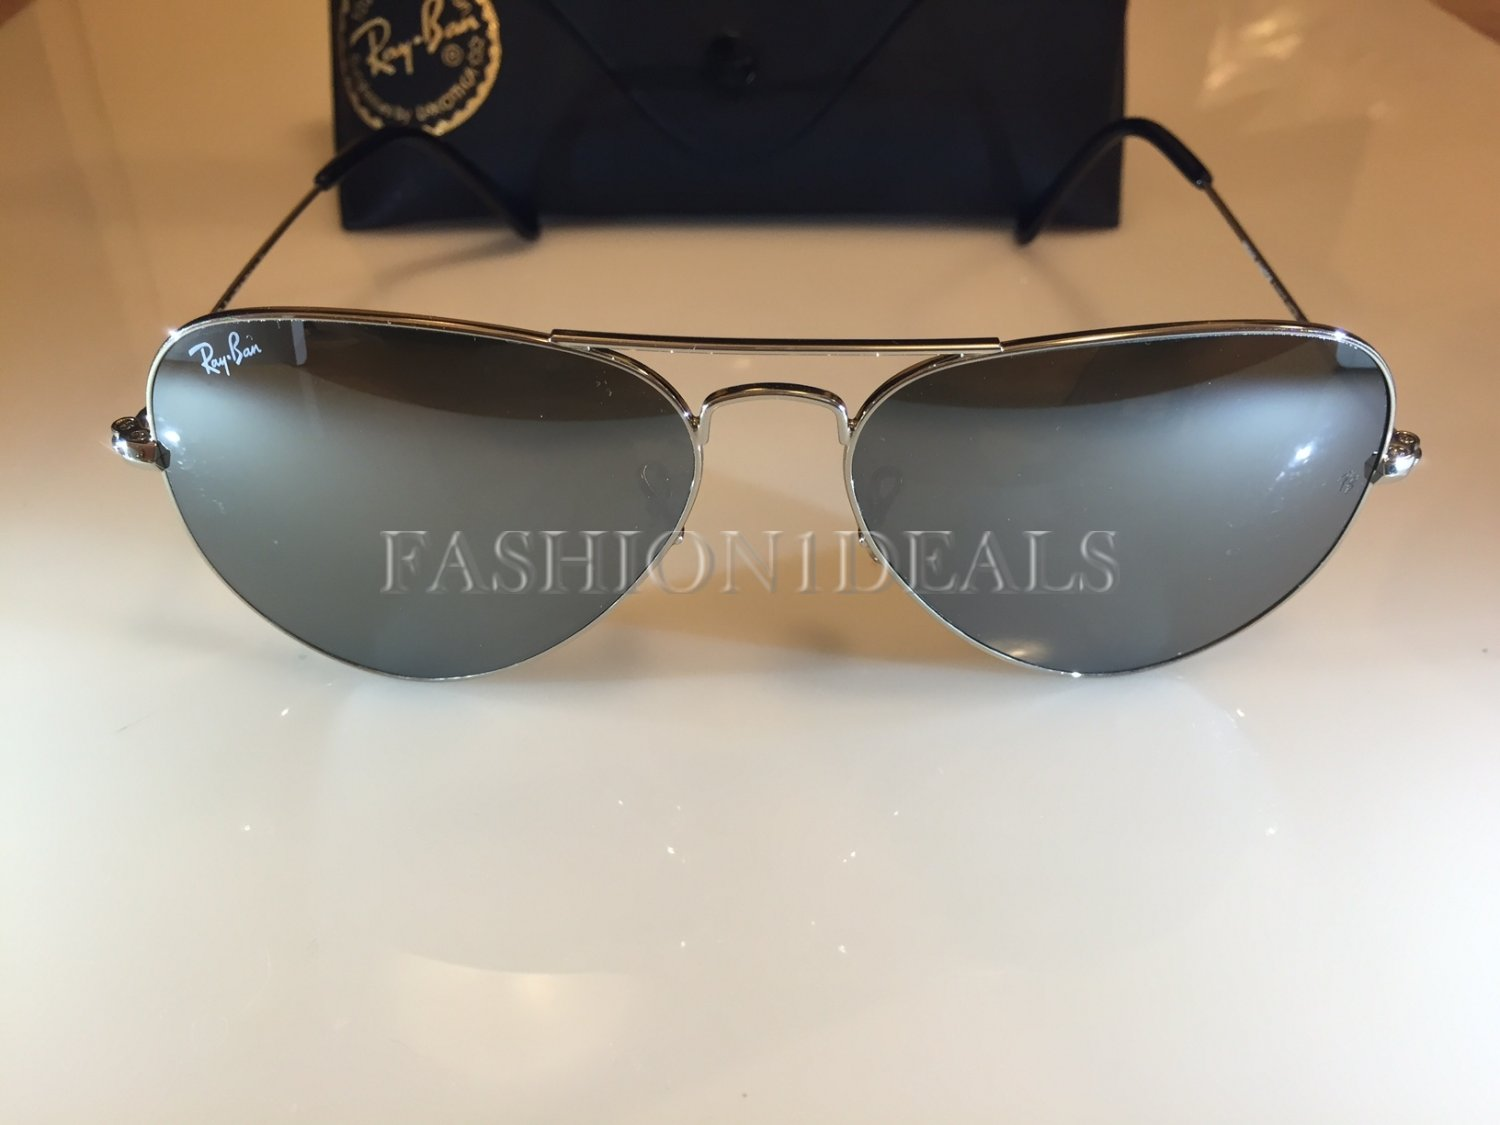 100% AUTHENTIC 3025 W3277 SILVER MIRROR RAY BAN LARGE AVIATOR SUNGLASSES